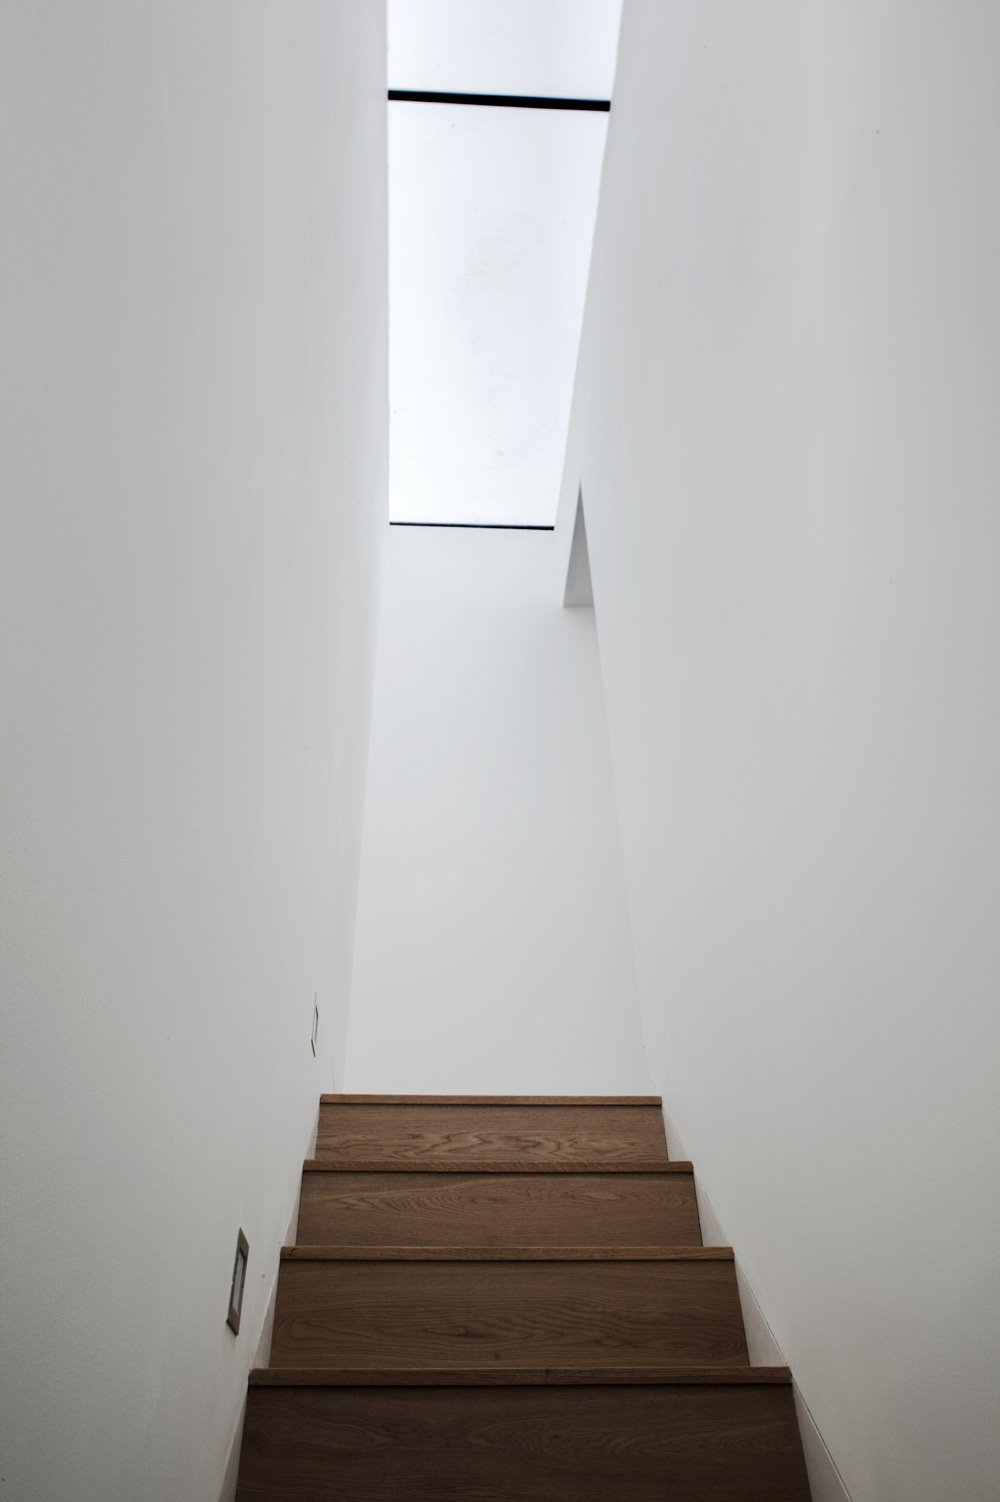 Bespoke stairs - house refurbishment and extension